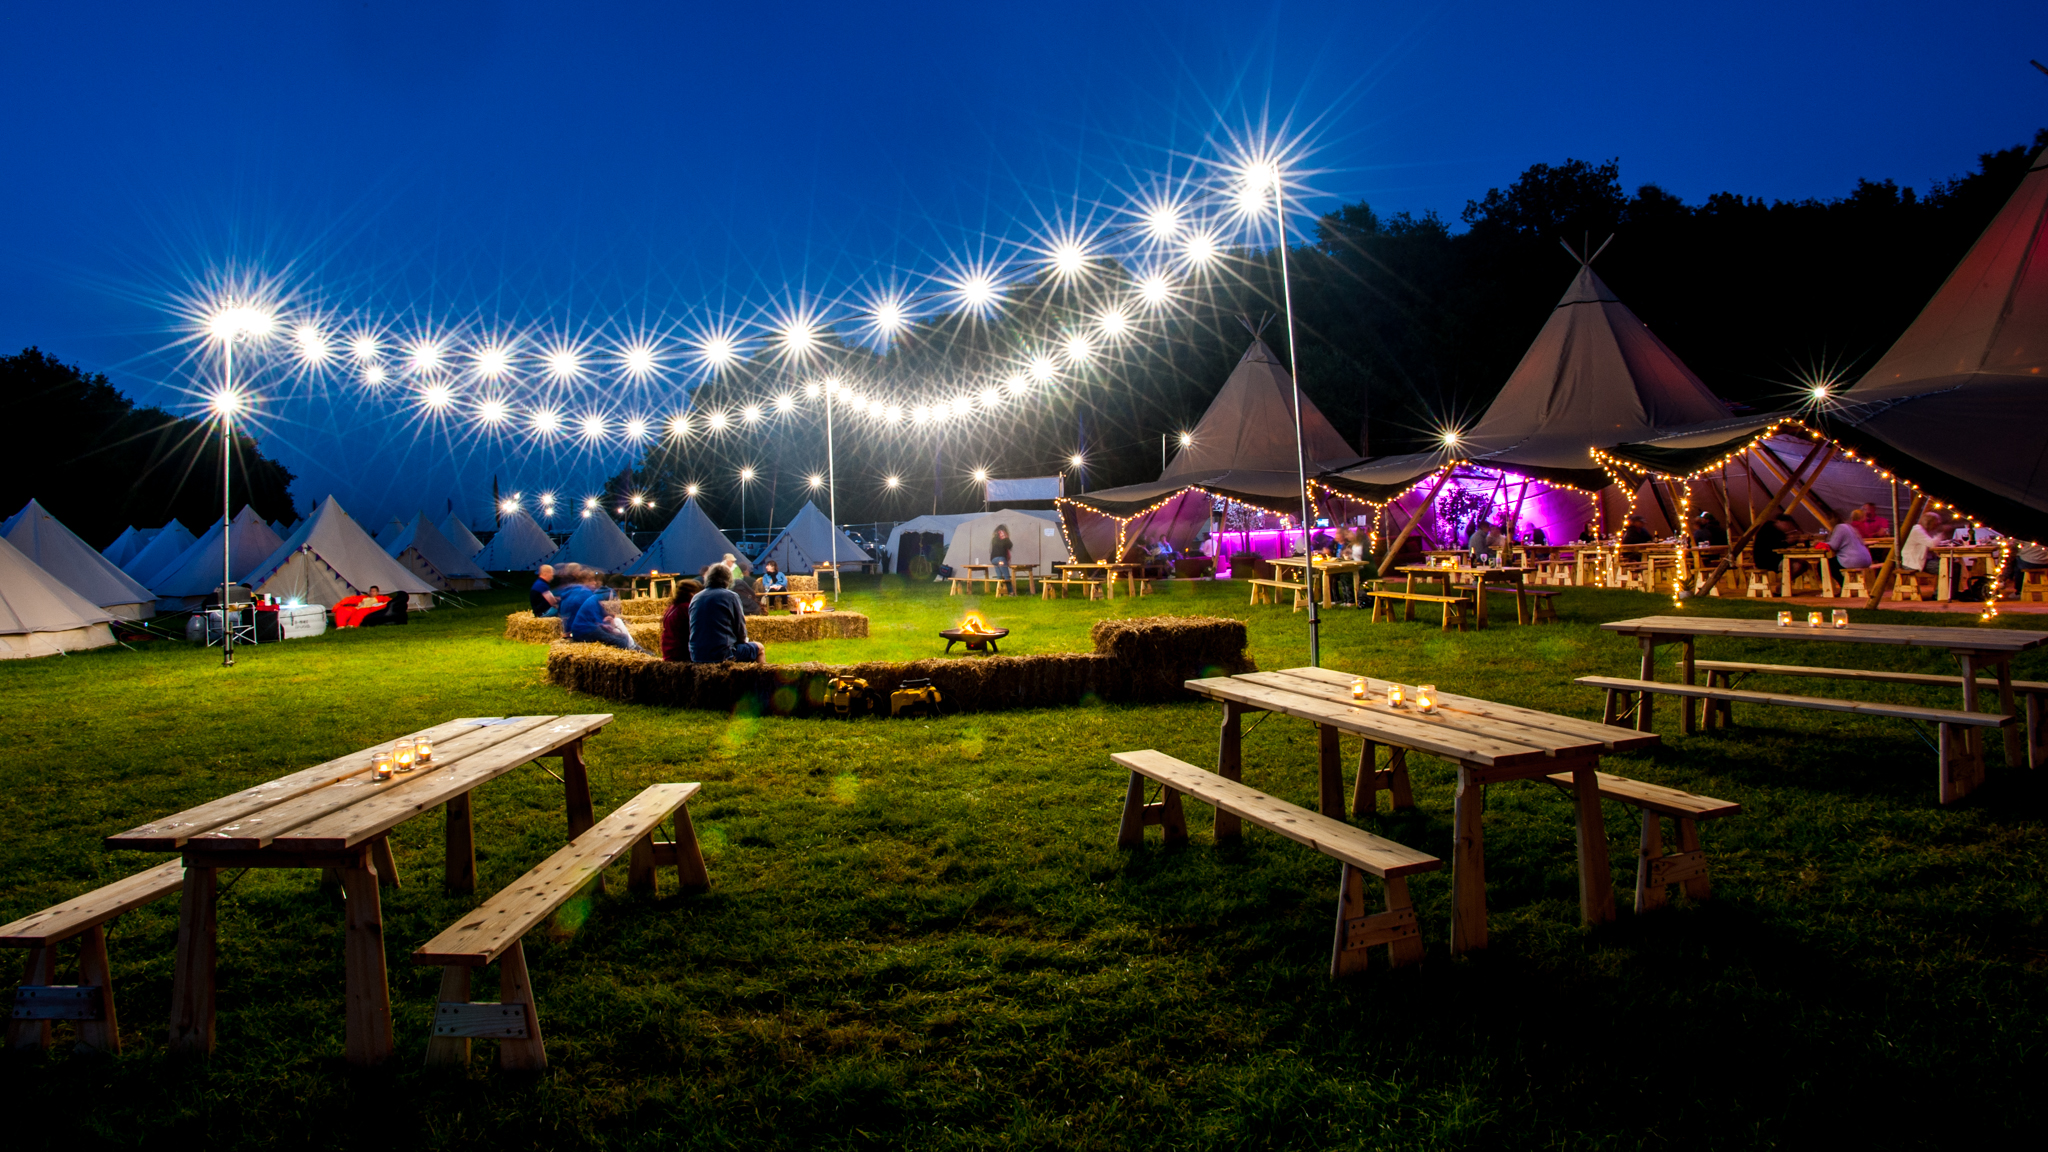 Hotel Bell Tent Sporting Events Night Time